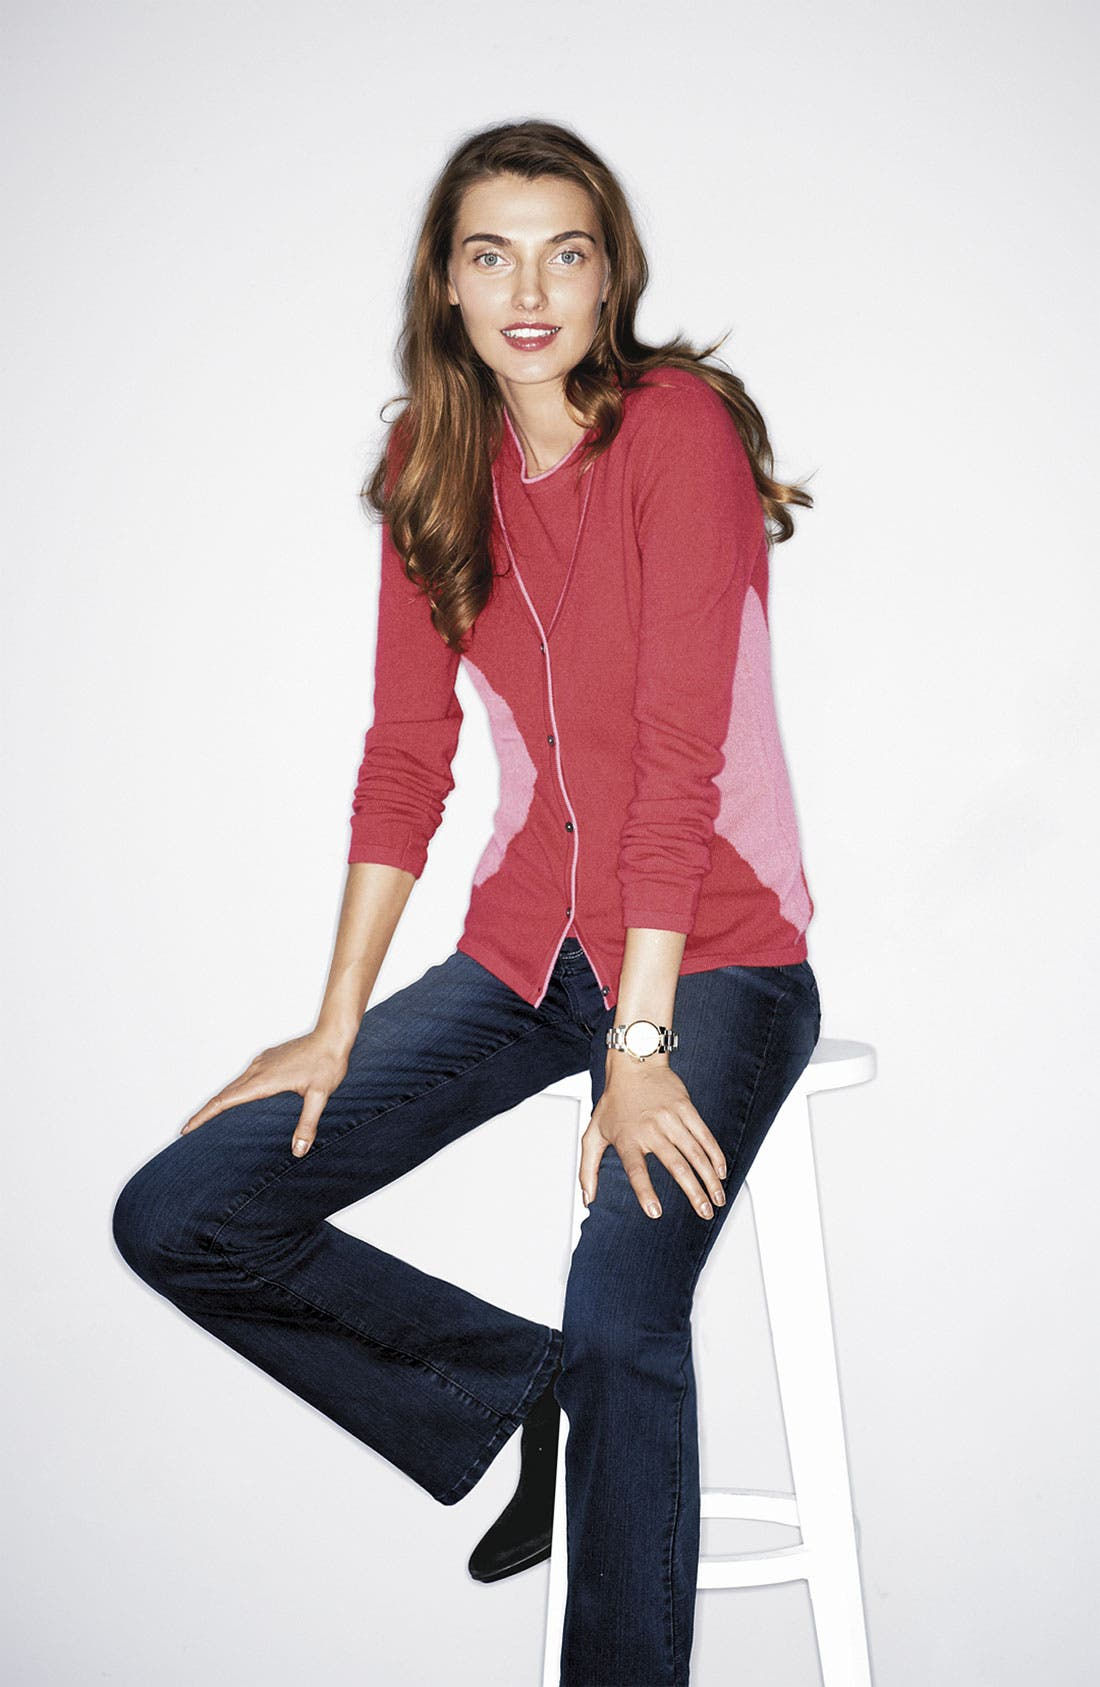 Alternate Image 1 Selected - Lauren Hansen Cardigan & Shell, NYDJ Jeans